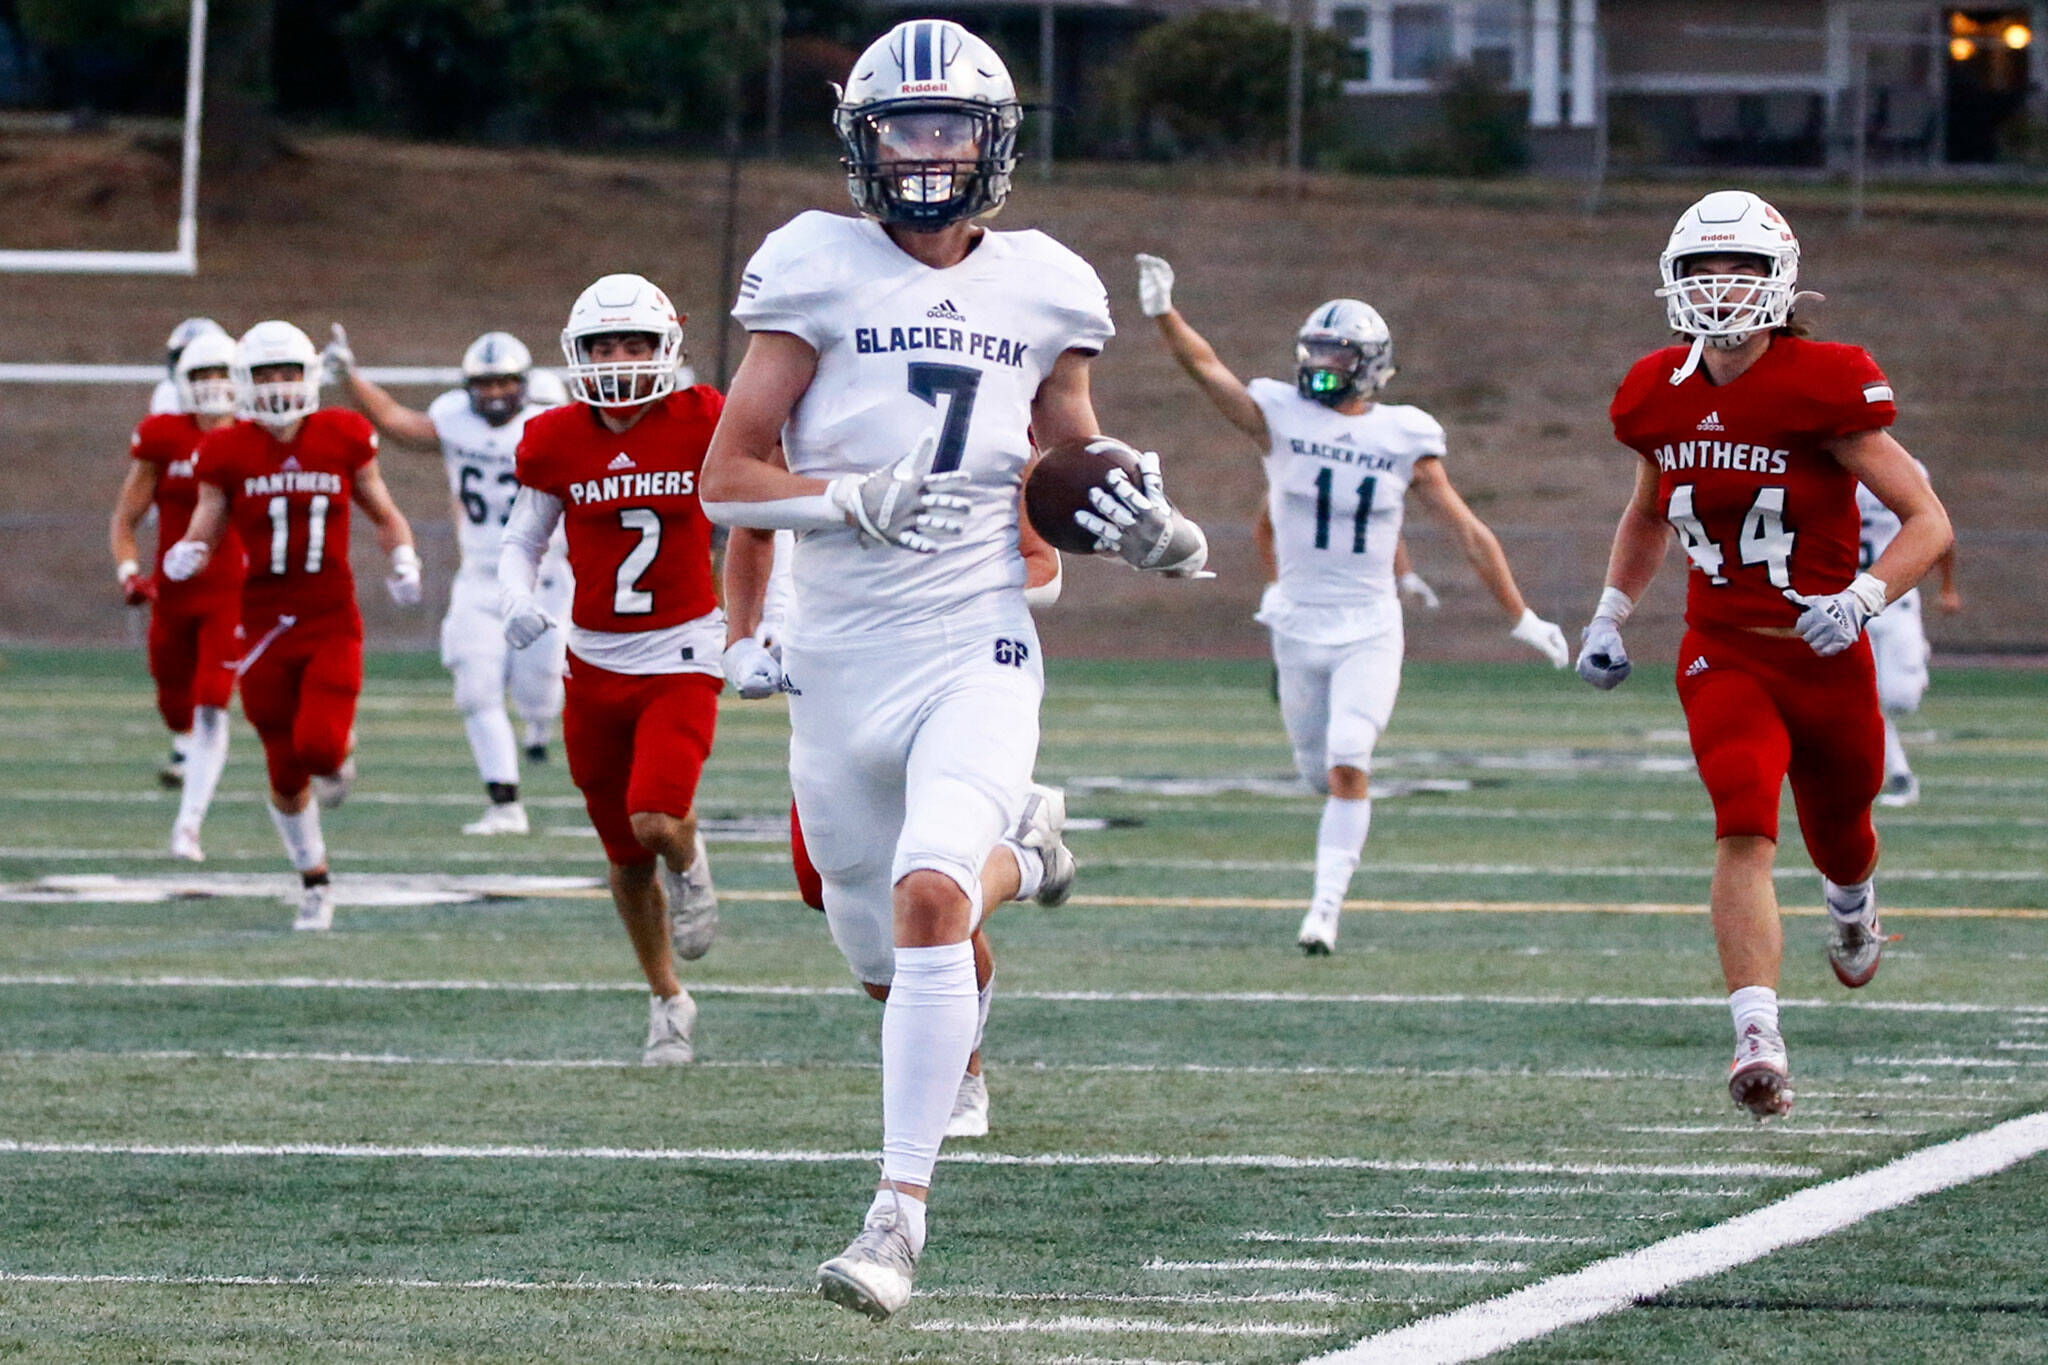 Glacier Peak's Logan Szarzec outruns the Snohomish defense for a touchdown during the second quarter Friday night at Veteran's Memorial Stadium in Snohomish. (Kevin Clark / The Herald)